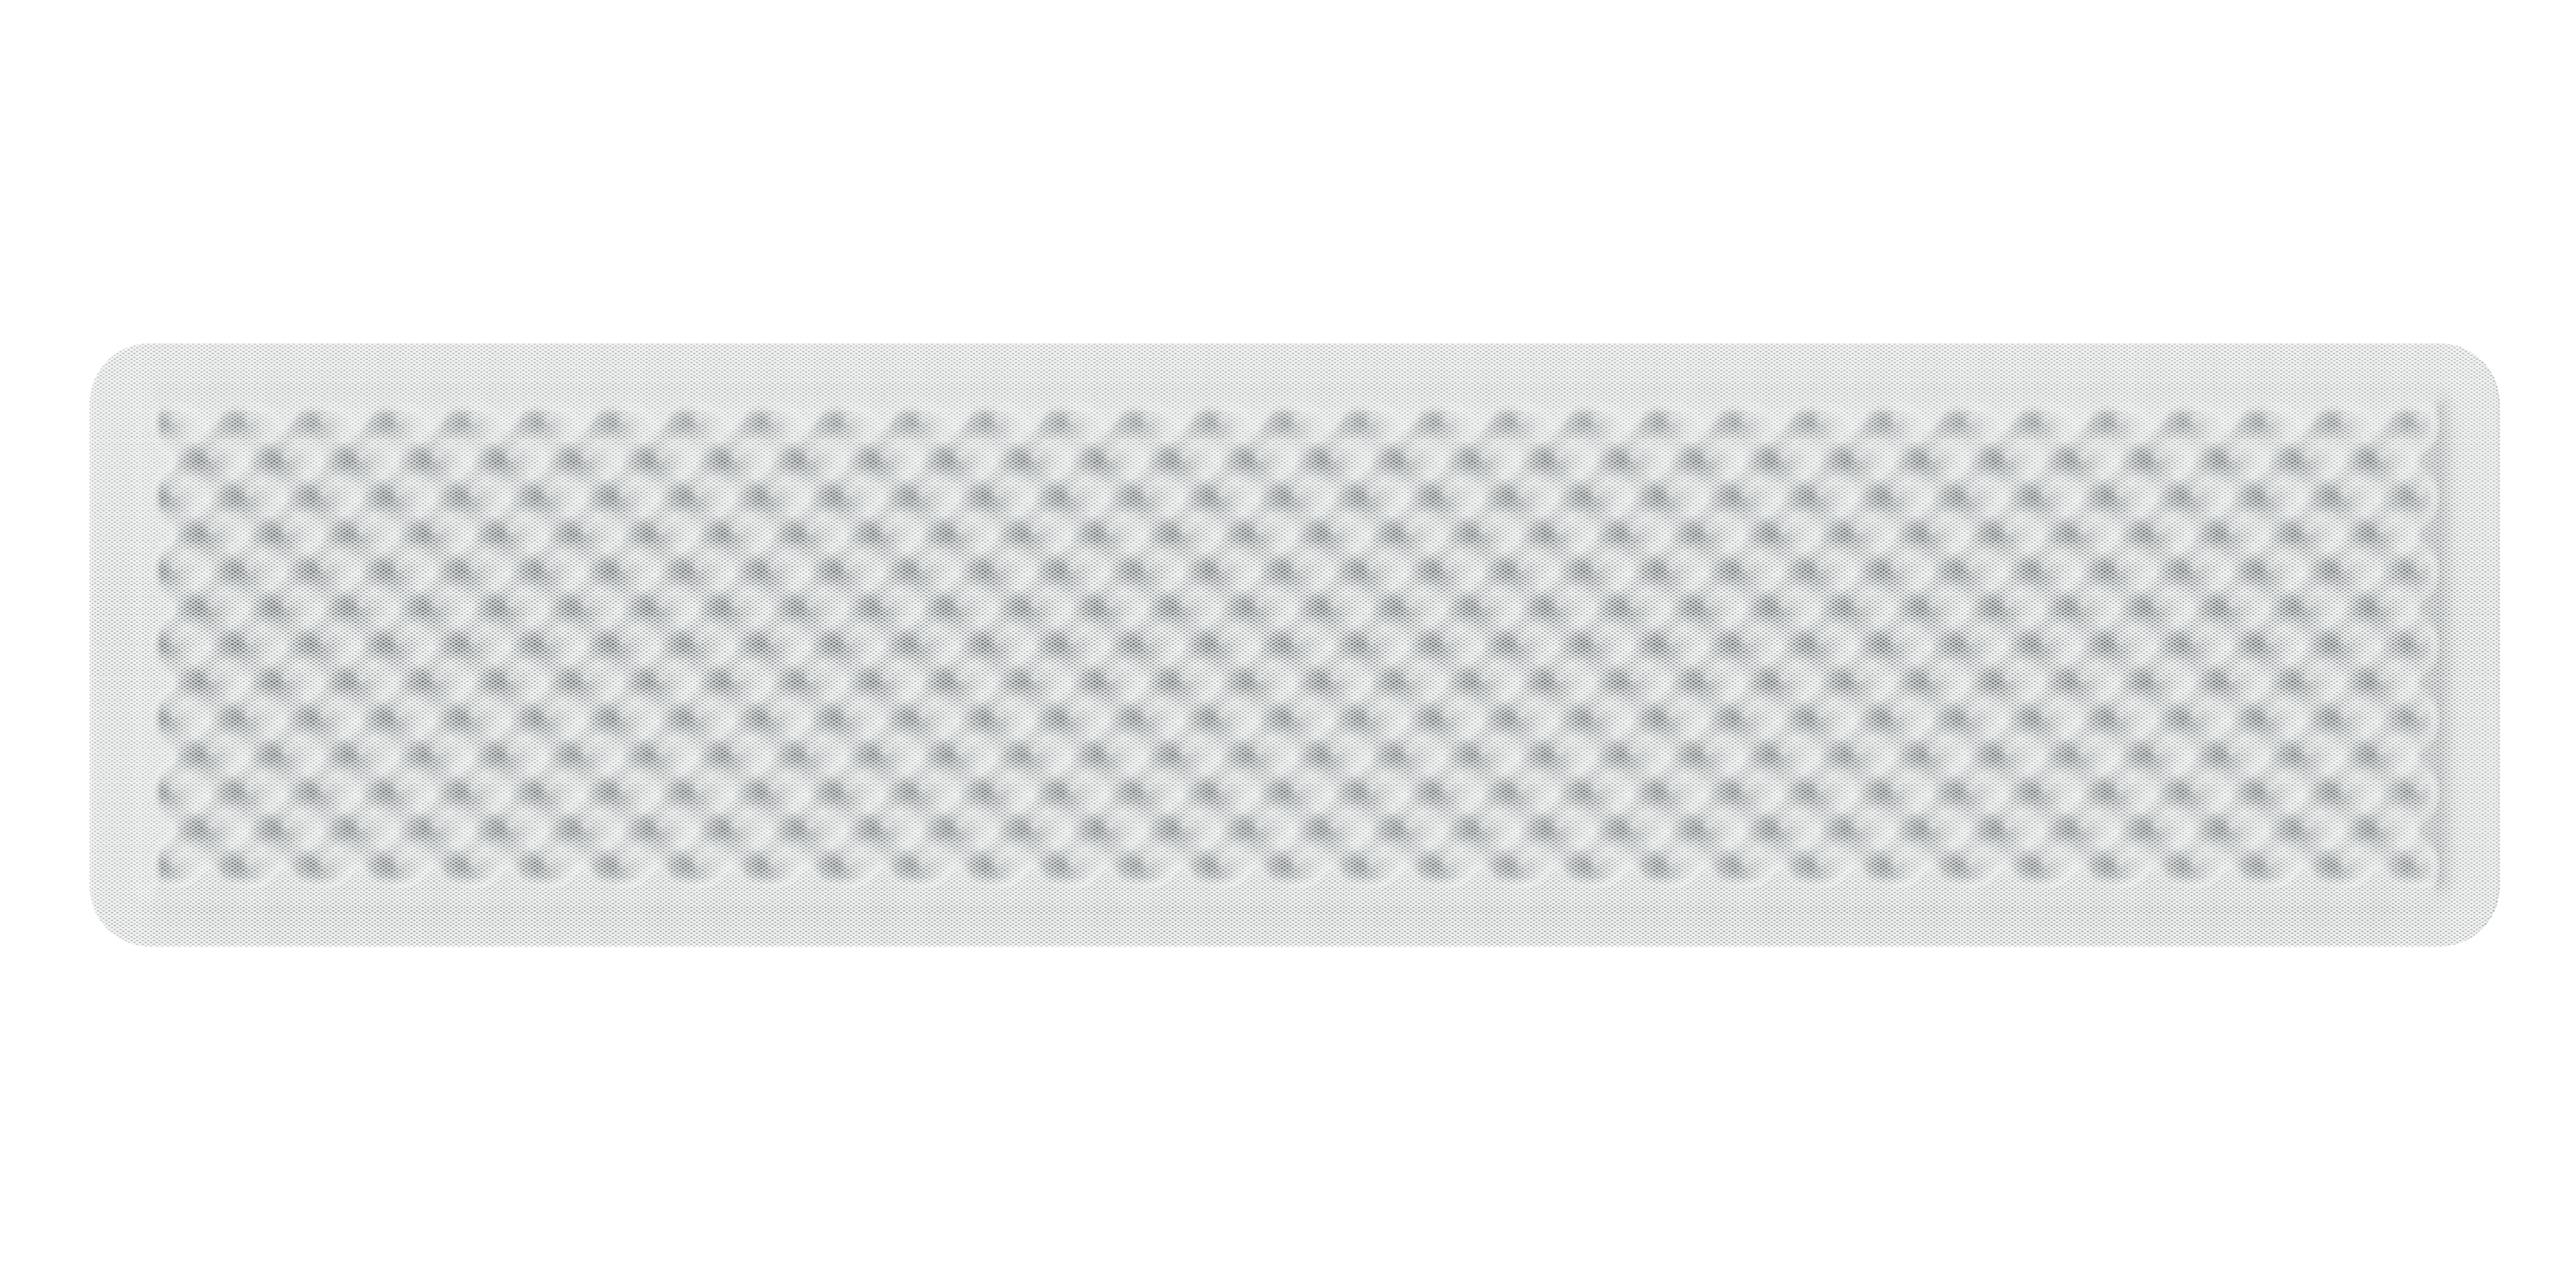 Artemide acoustic panel sound absorbing EGGBOARD WALL SUSP./CEILING ACOUSTIC PANEL 160x40 WHITE